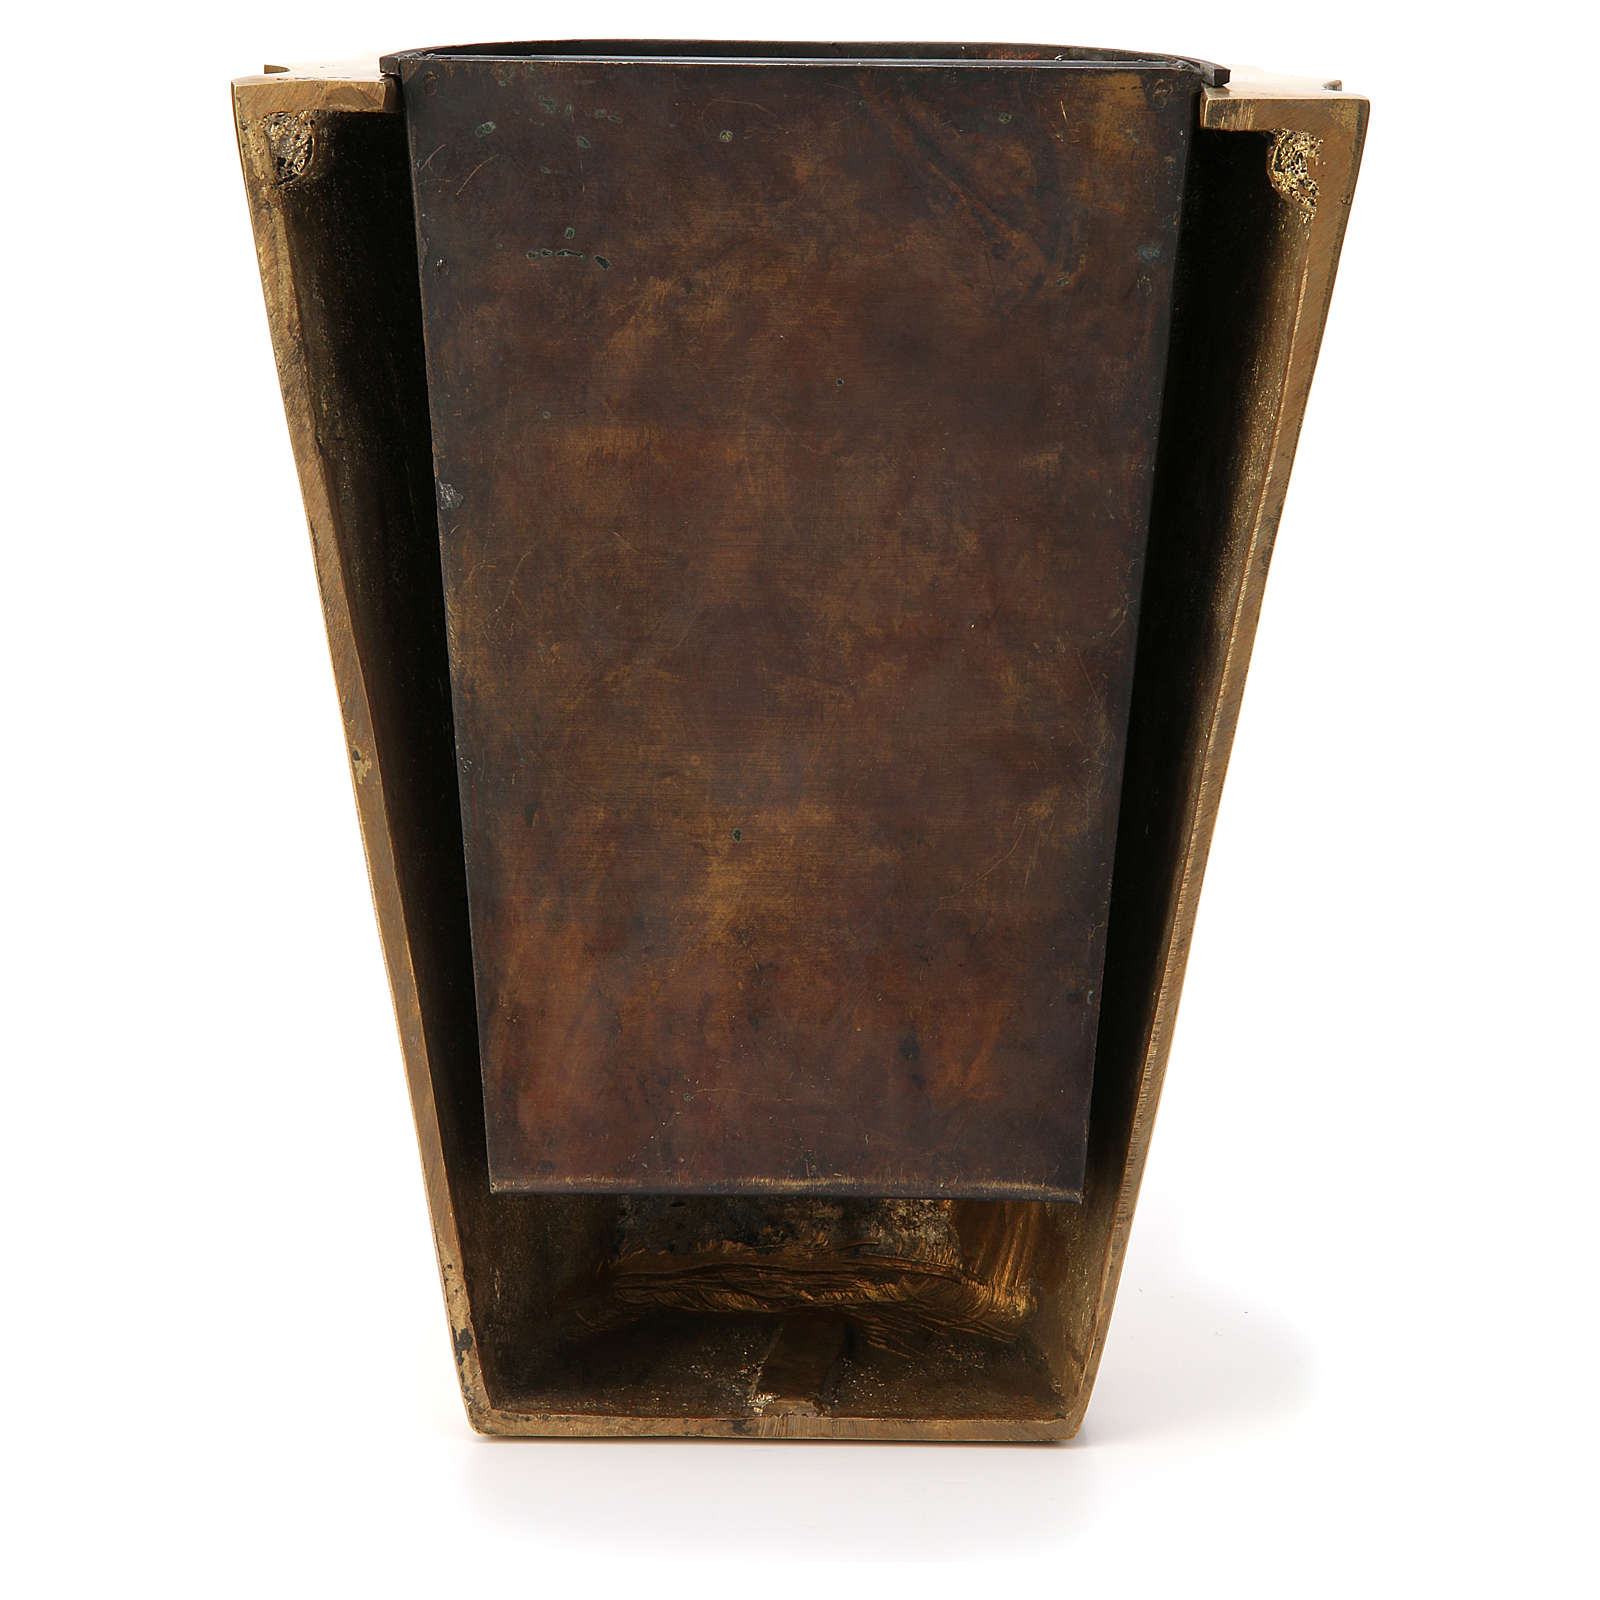 Cemetery vase bronzed plissé brass with basin 3